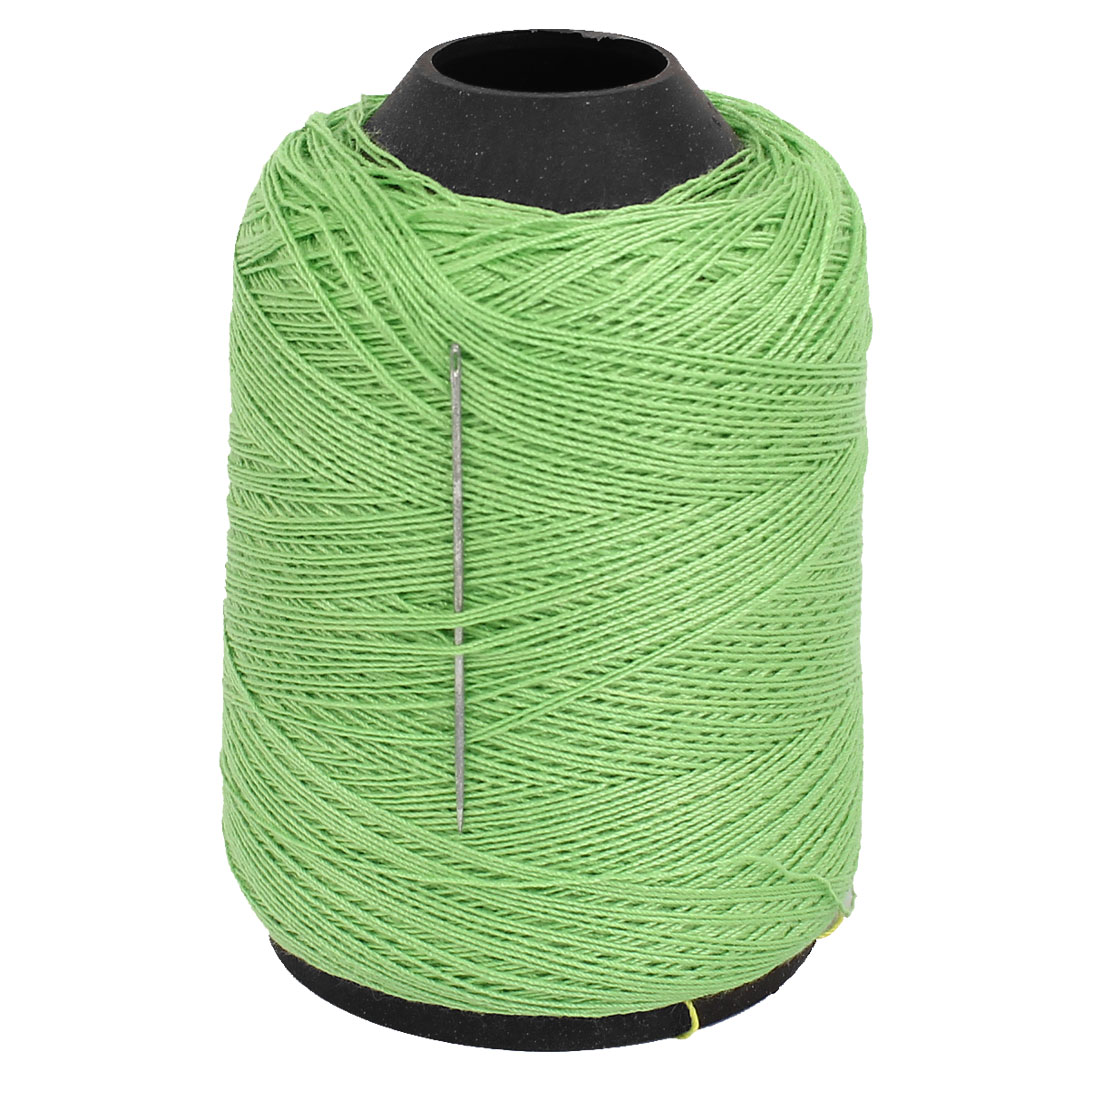 Green Cotton Leather Stitching Sewing Quilting Thread Spool for Tailor